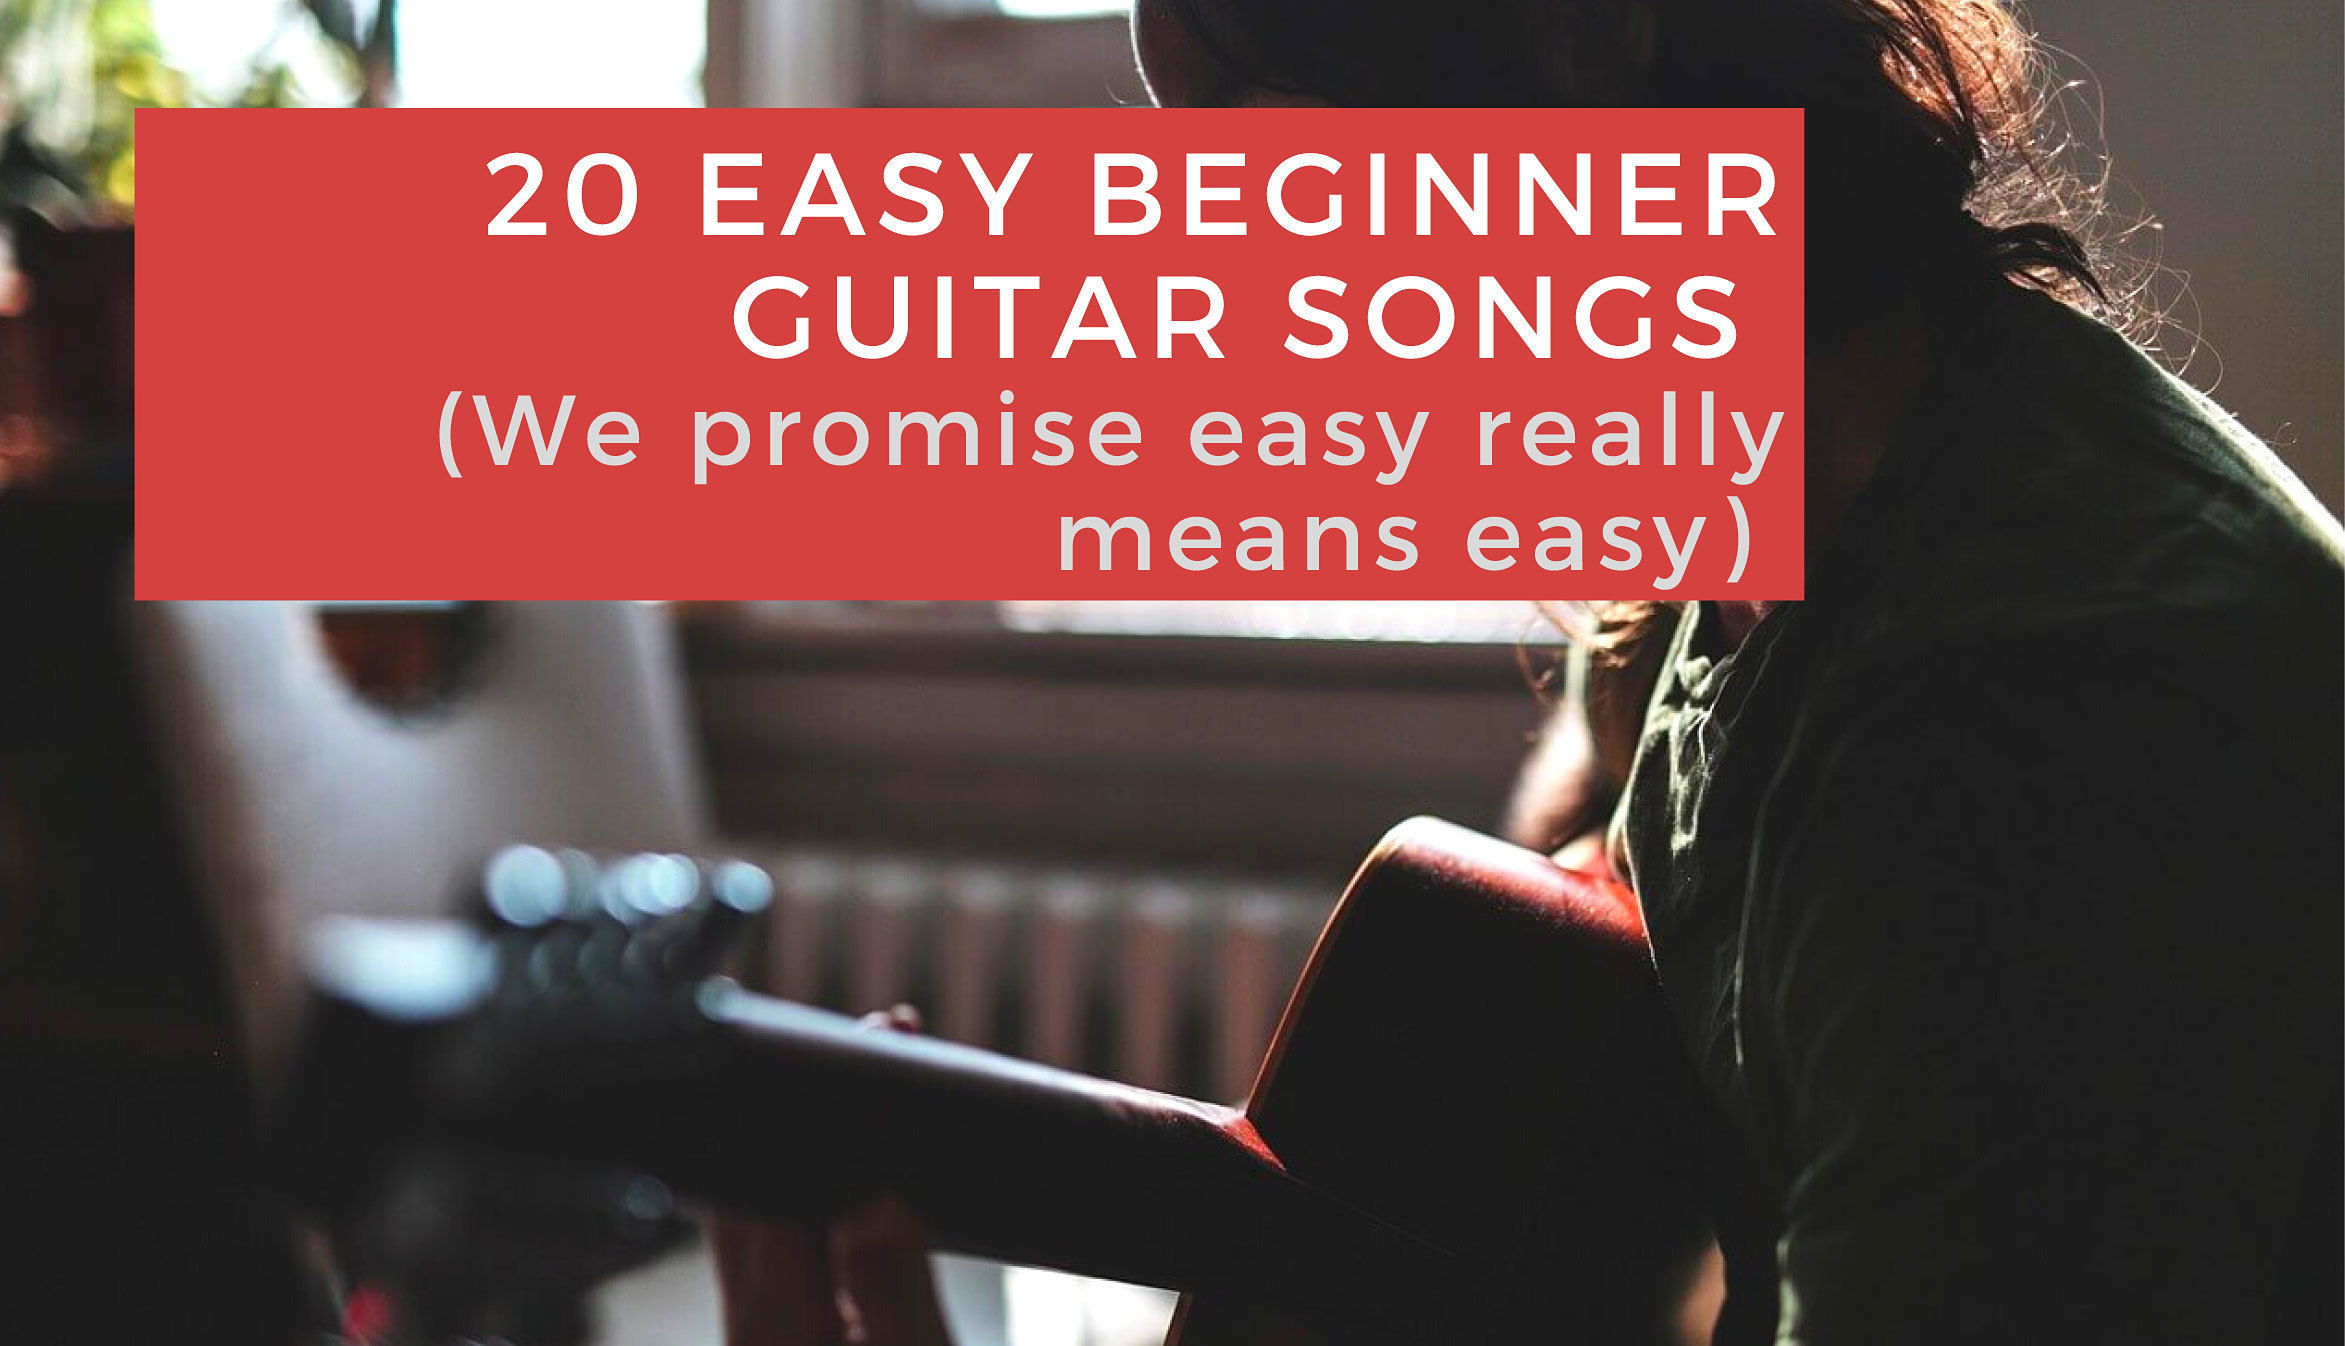 20 Easy Beginner Guitar Songs To Learn Easy Acoustic Guitar Songs